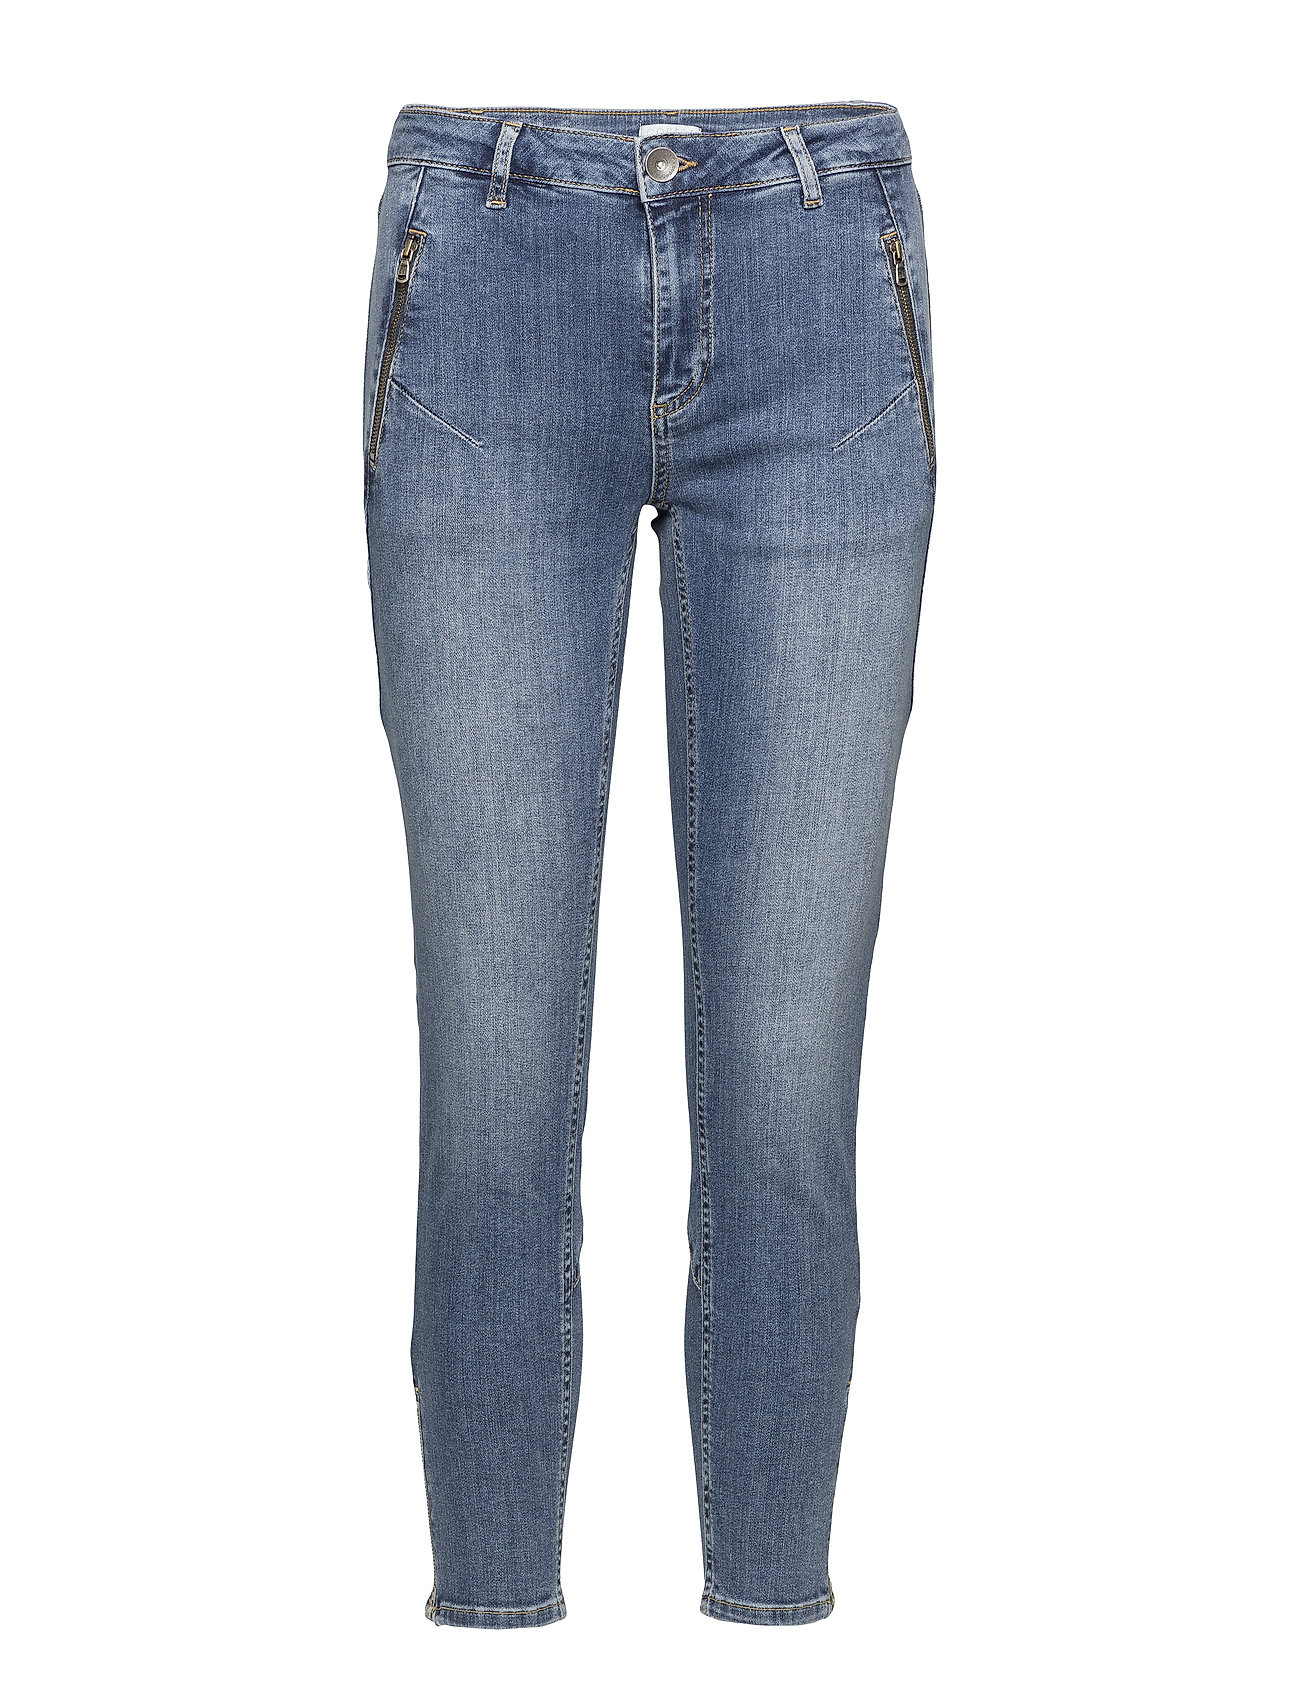 Coster Copenhagen Jeans Relaxed 7/8 Jeans